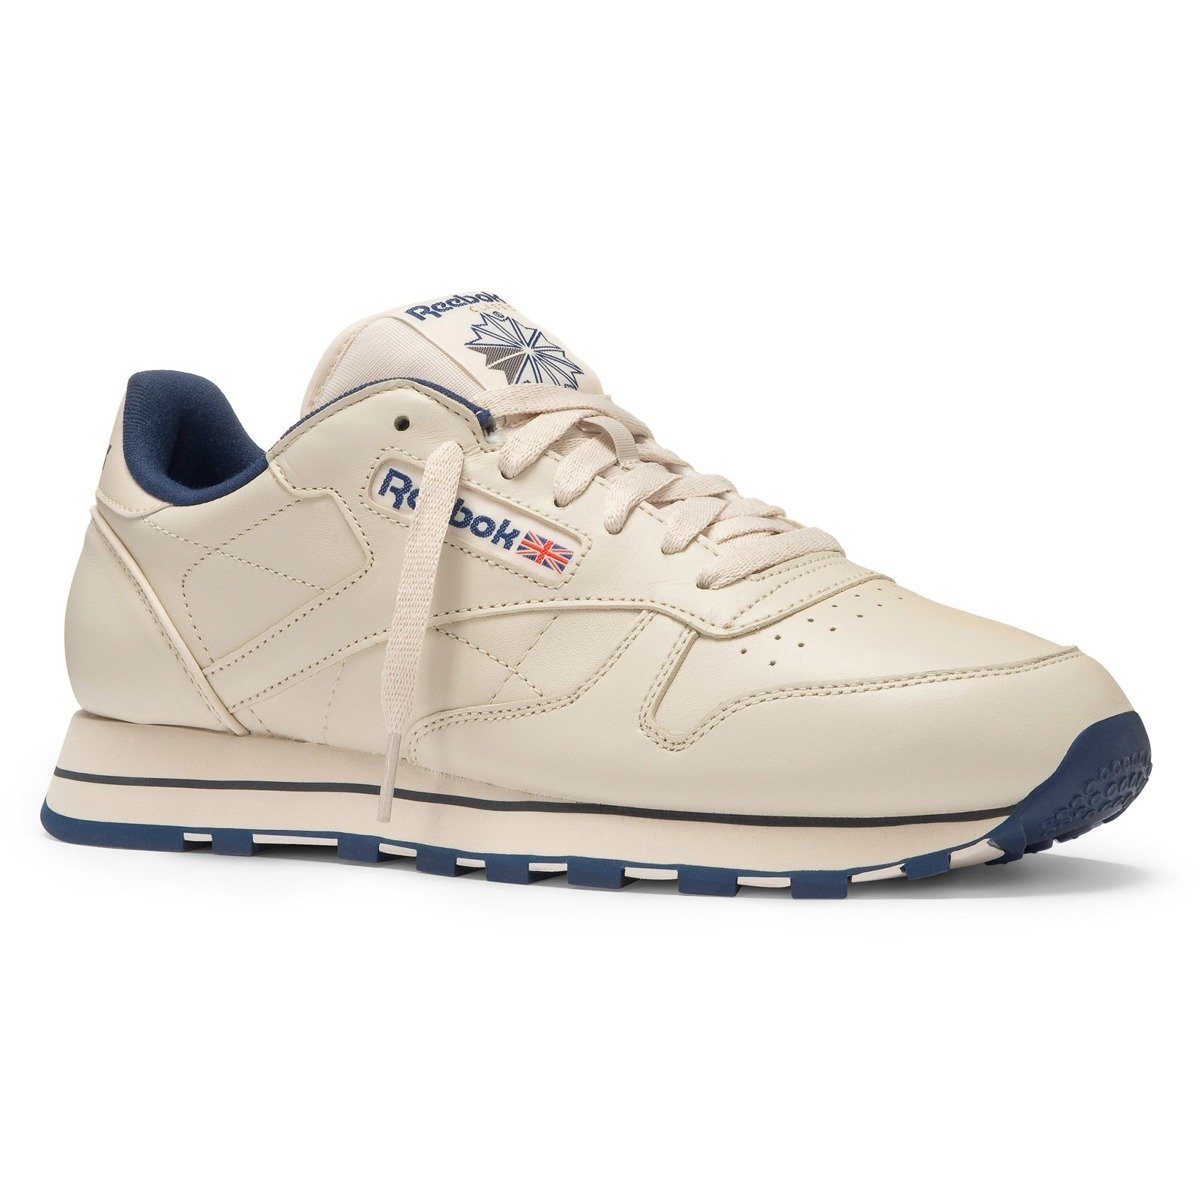 01623452f7de3 Reebok Classic Leather - 28412 Intense Ecru Navy